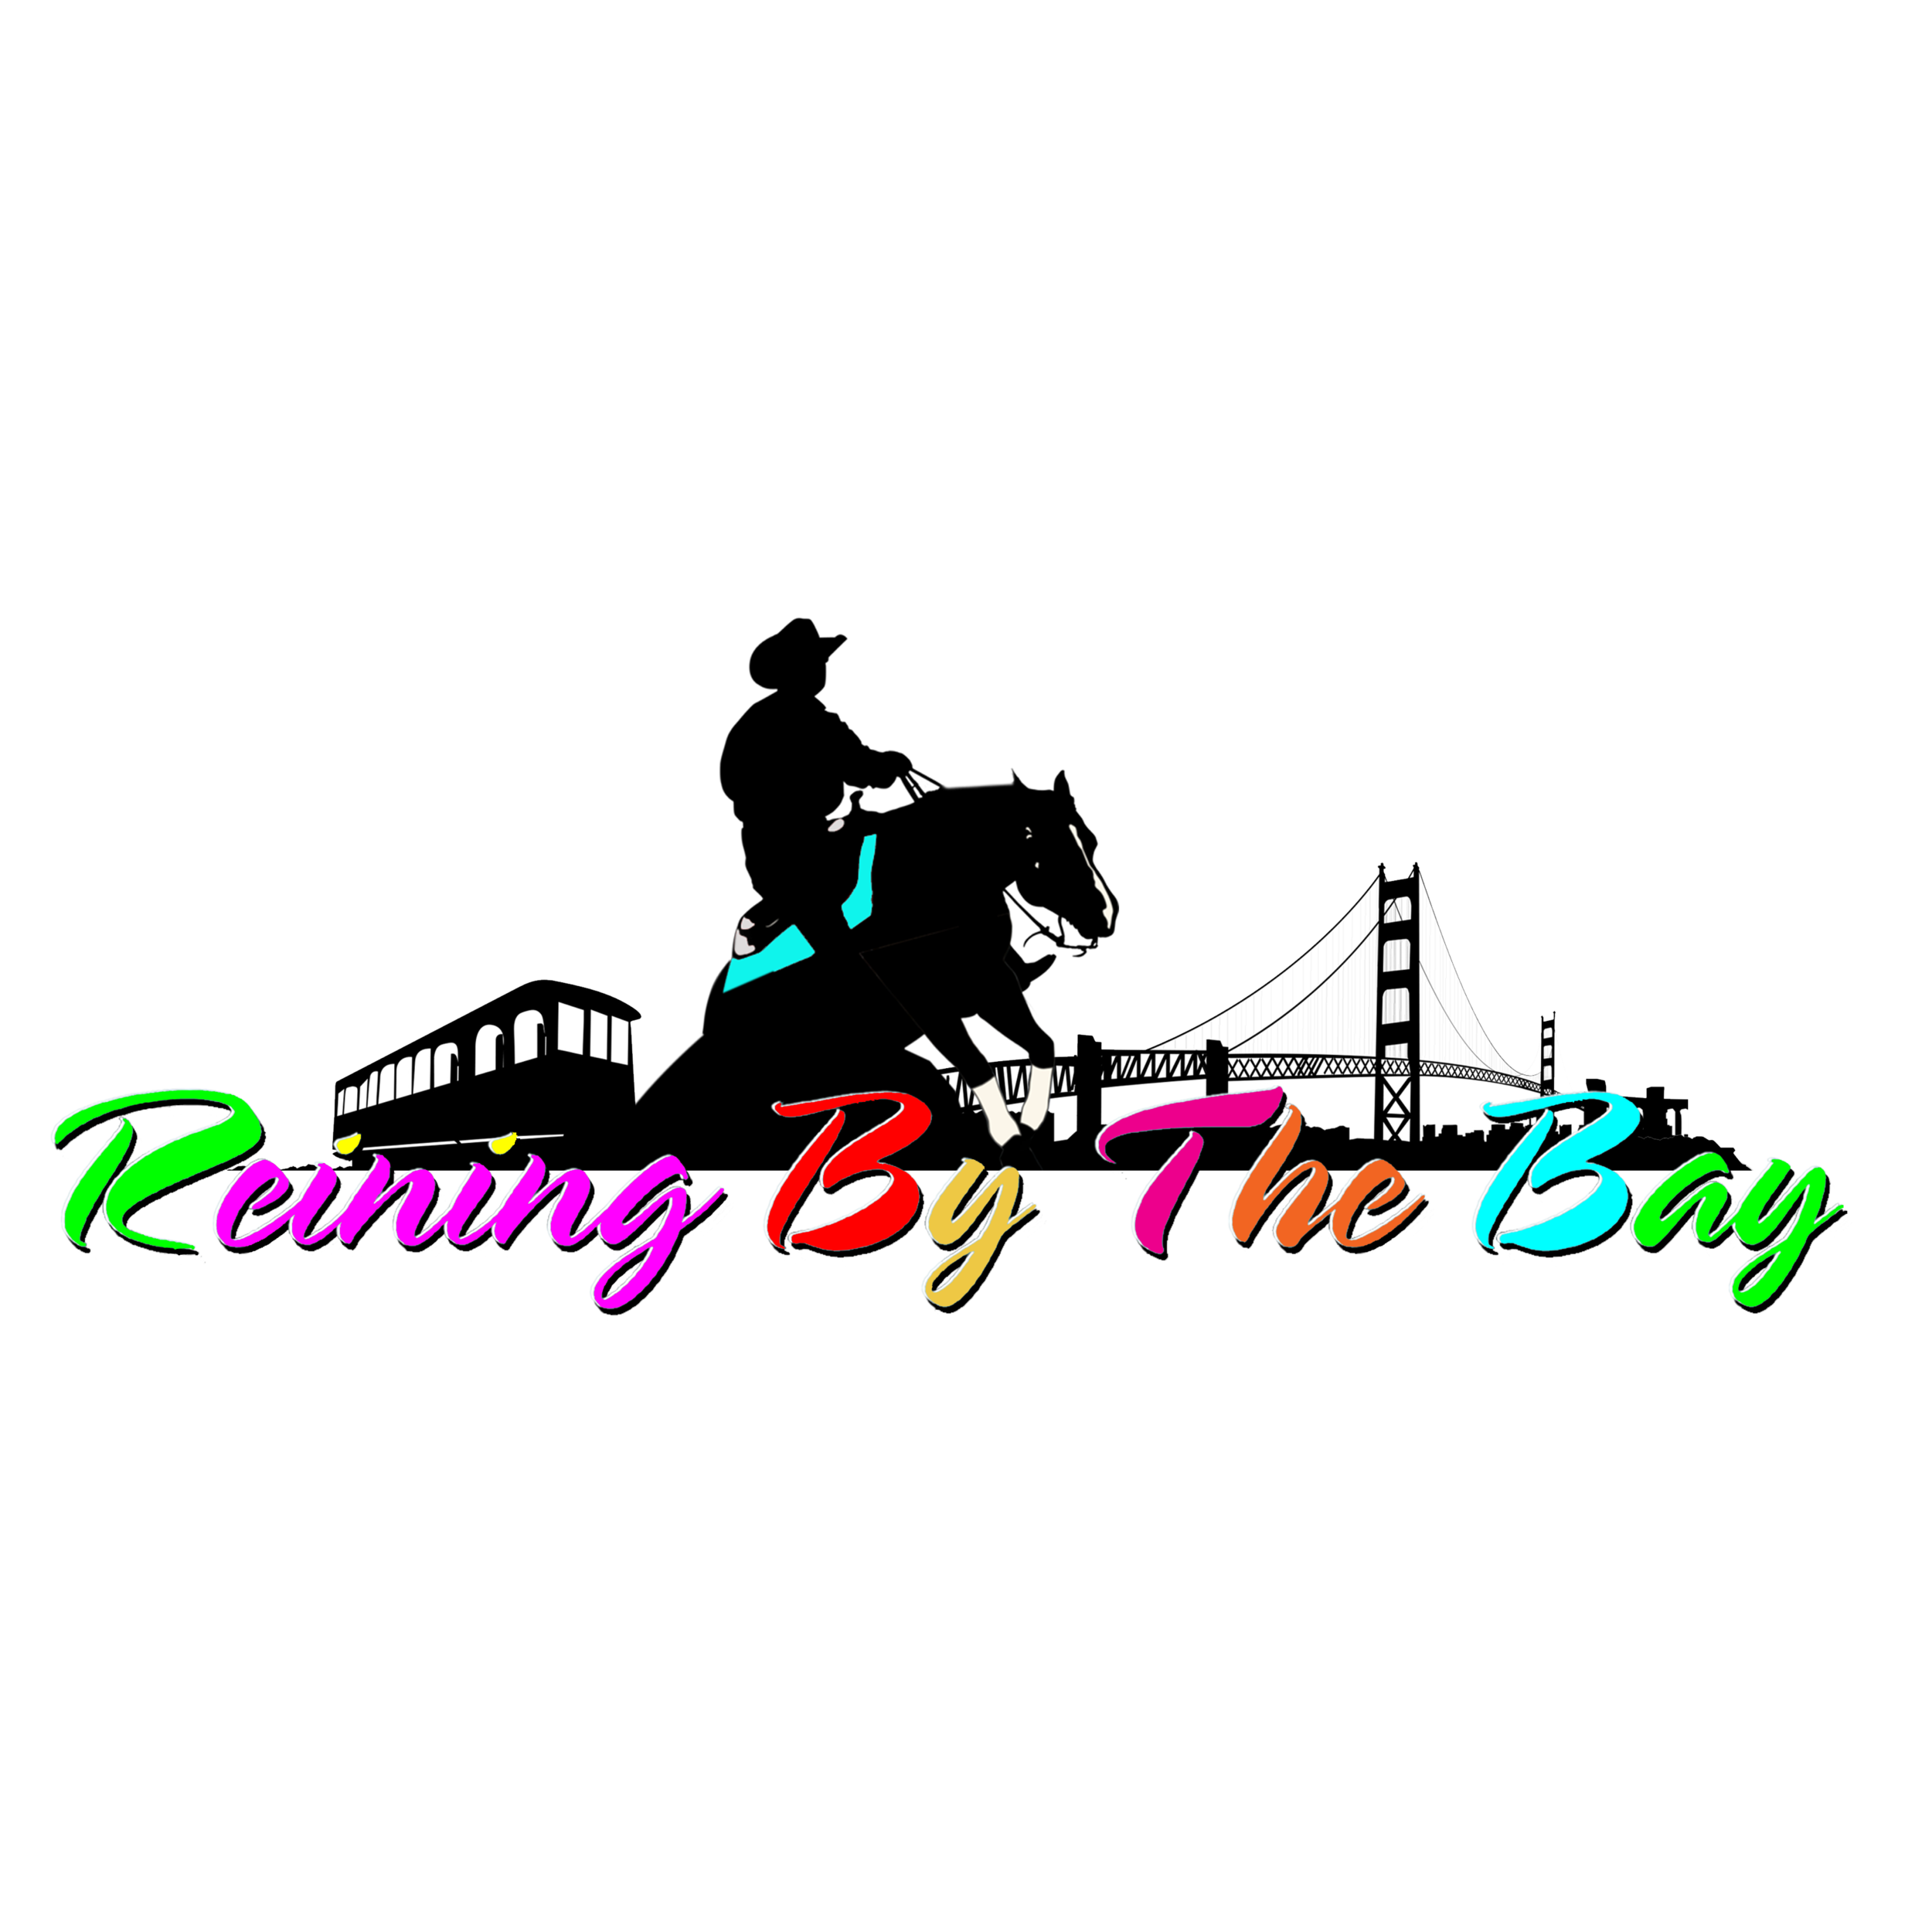 RBB bay scape logo.png